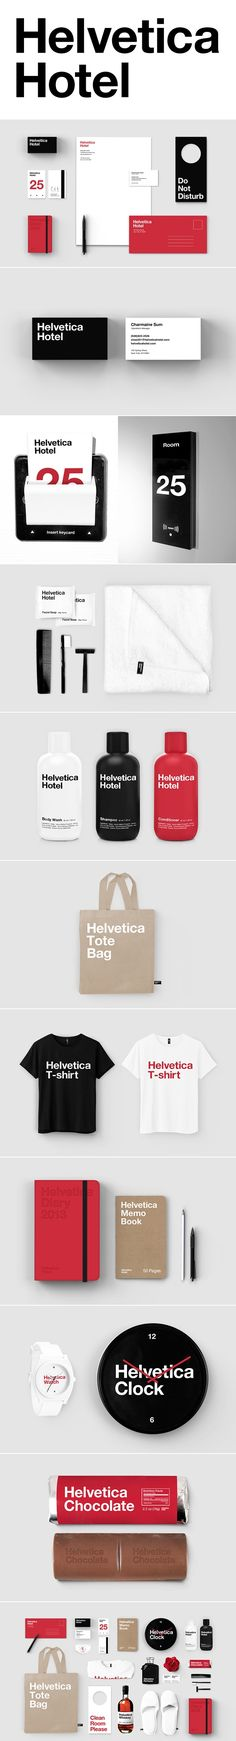 #Helvetica as a Hotel + + + No. 1 Curious at least! http://www.100besttypefaces.com/1_Helvetica.html#a1